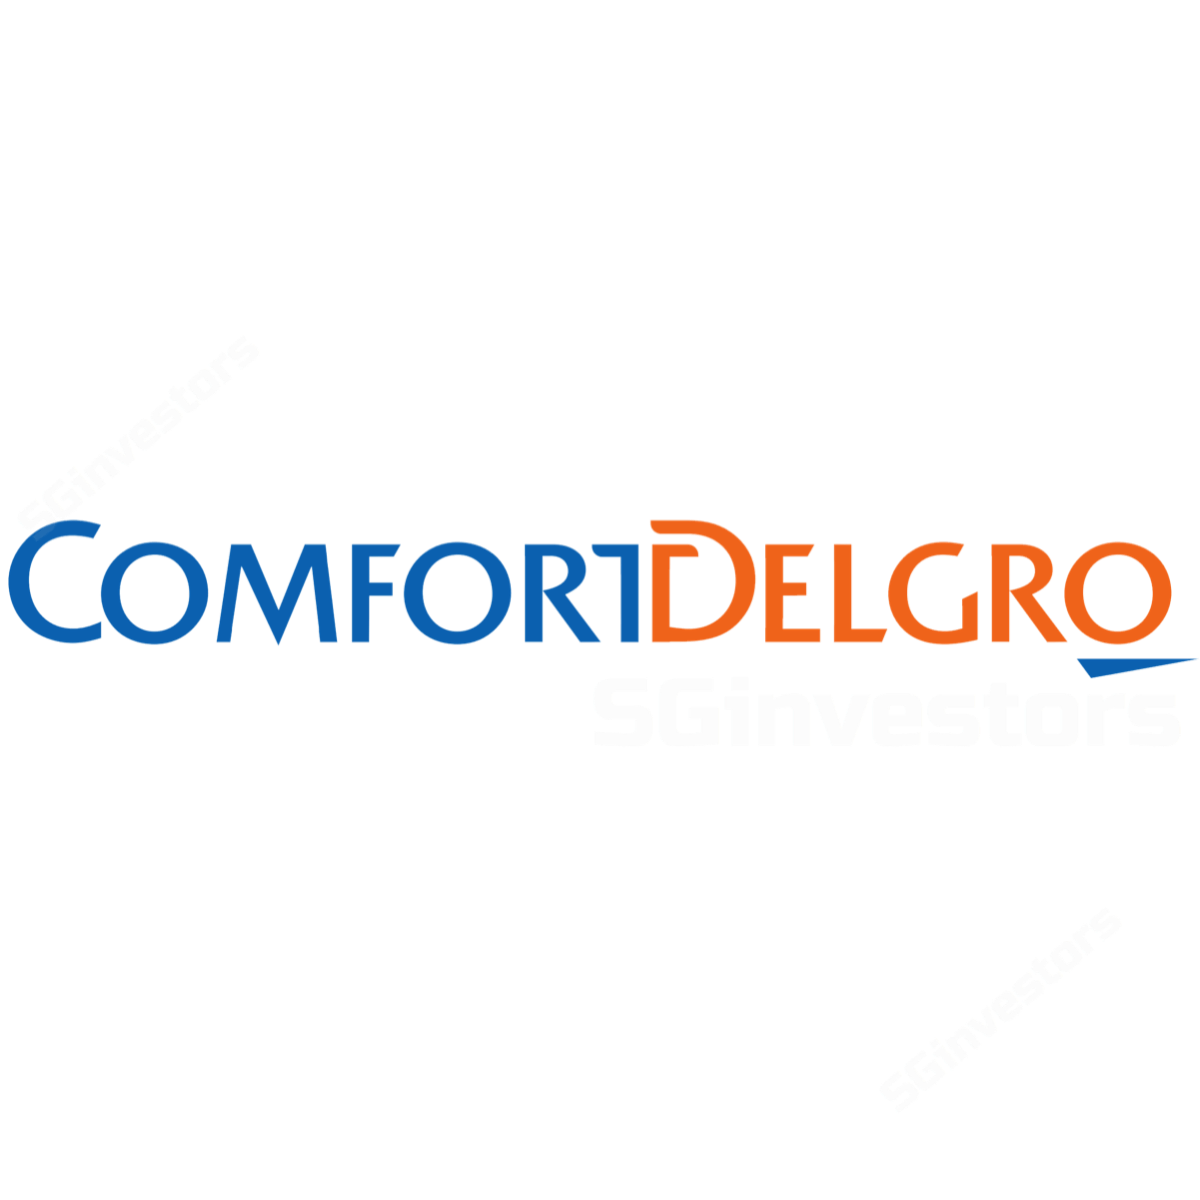 ComfortDelGro Corp Ltd - Phillip Securities 2017-02-13: Taxi in decline, Public Transport Services to mitigate